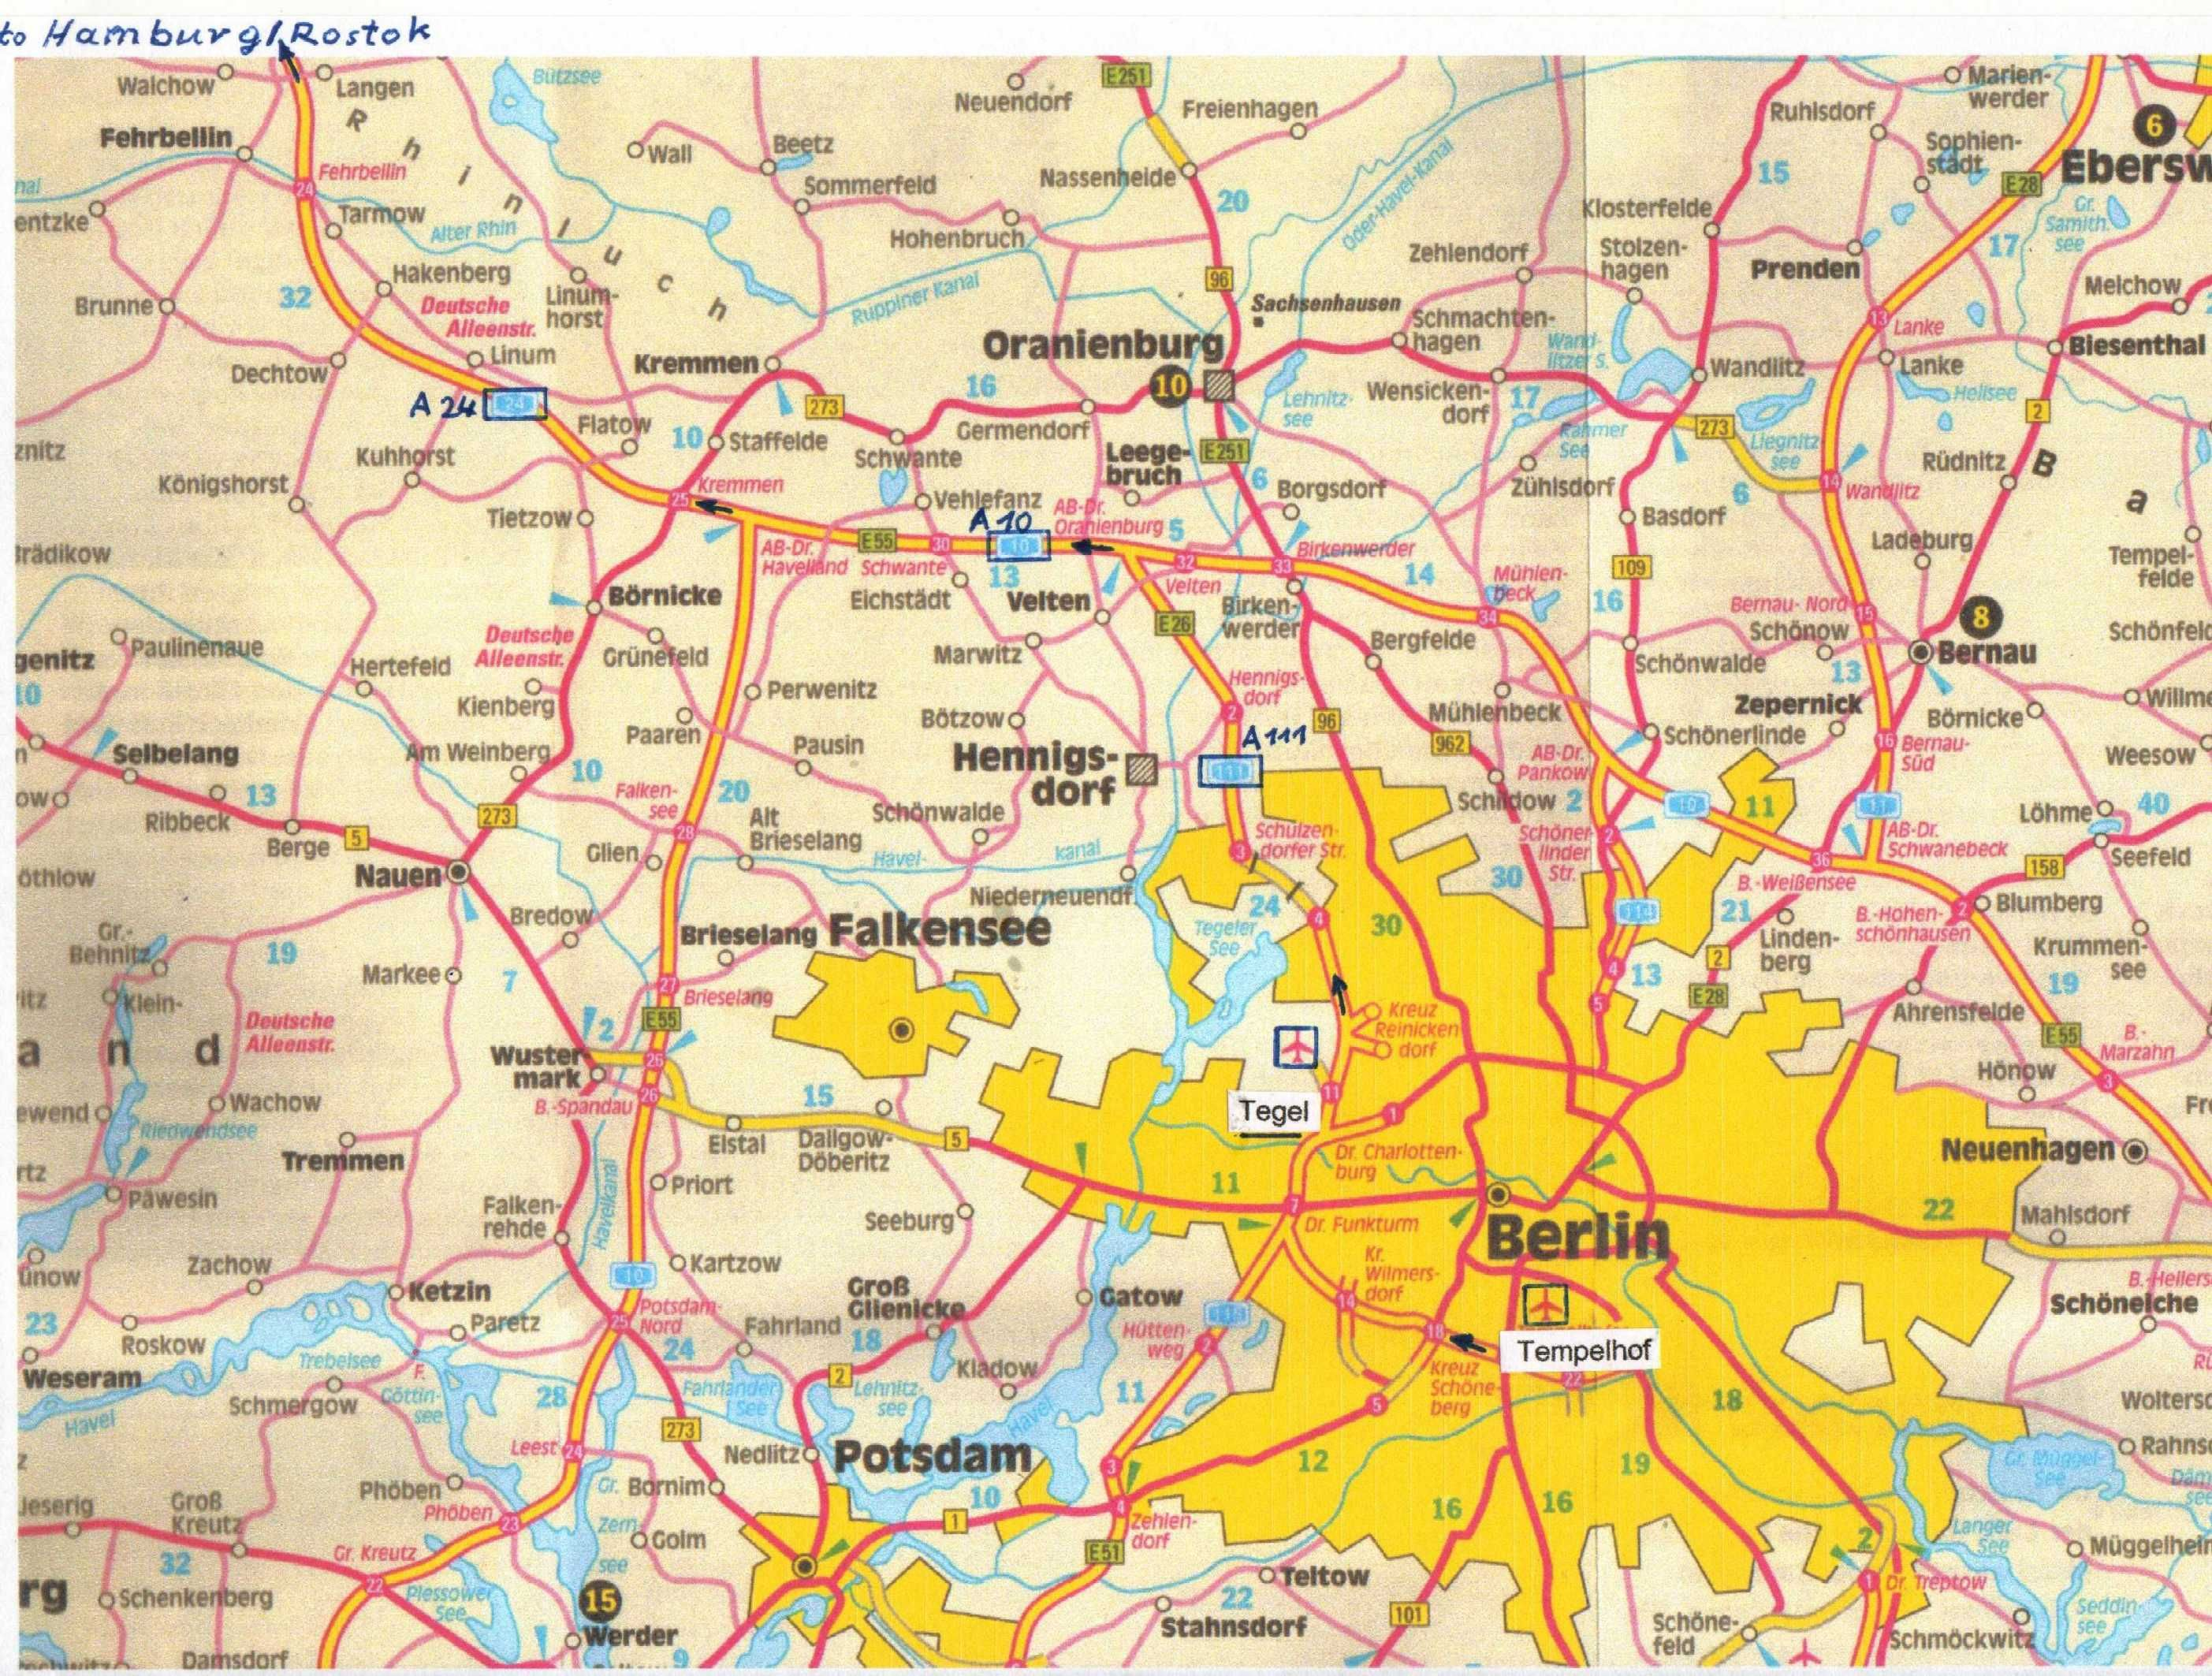 Berlin Germany – Tourist Map of Berlin